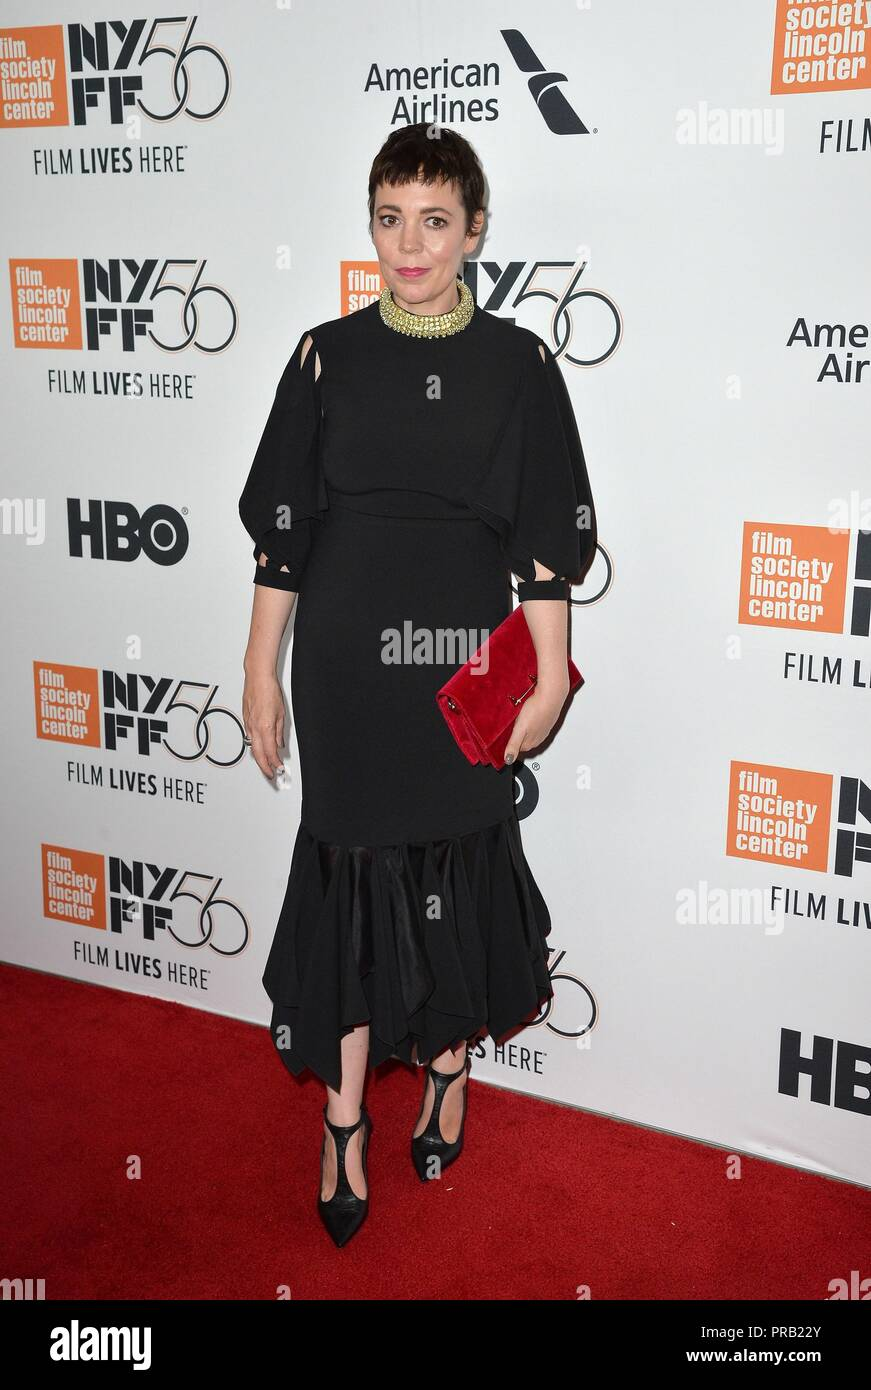 Olivia Colman at arrivals for THE FAVOURITE Premiere at the New York Film Festival Opening Night, Alice Tully Hall at Lincoln Center, New York, NY September 28, 2018. Photo By: Kristin Callahan/Everett Collection - Stock Image